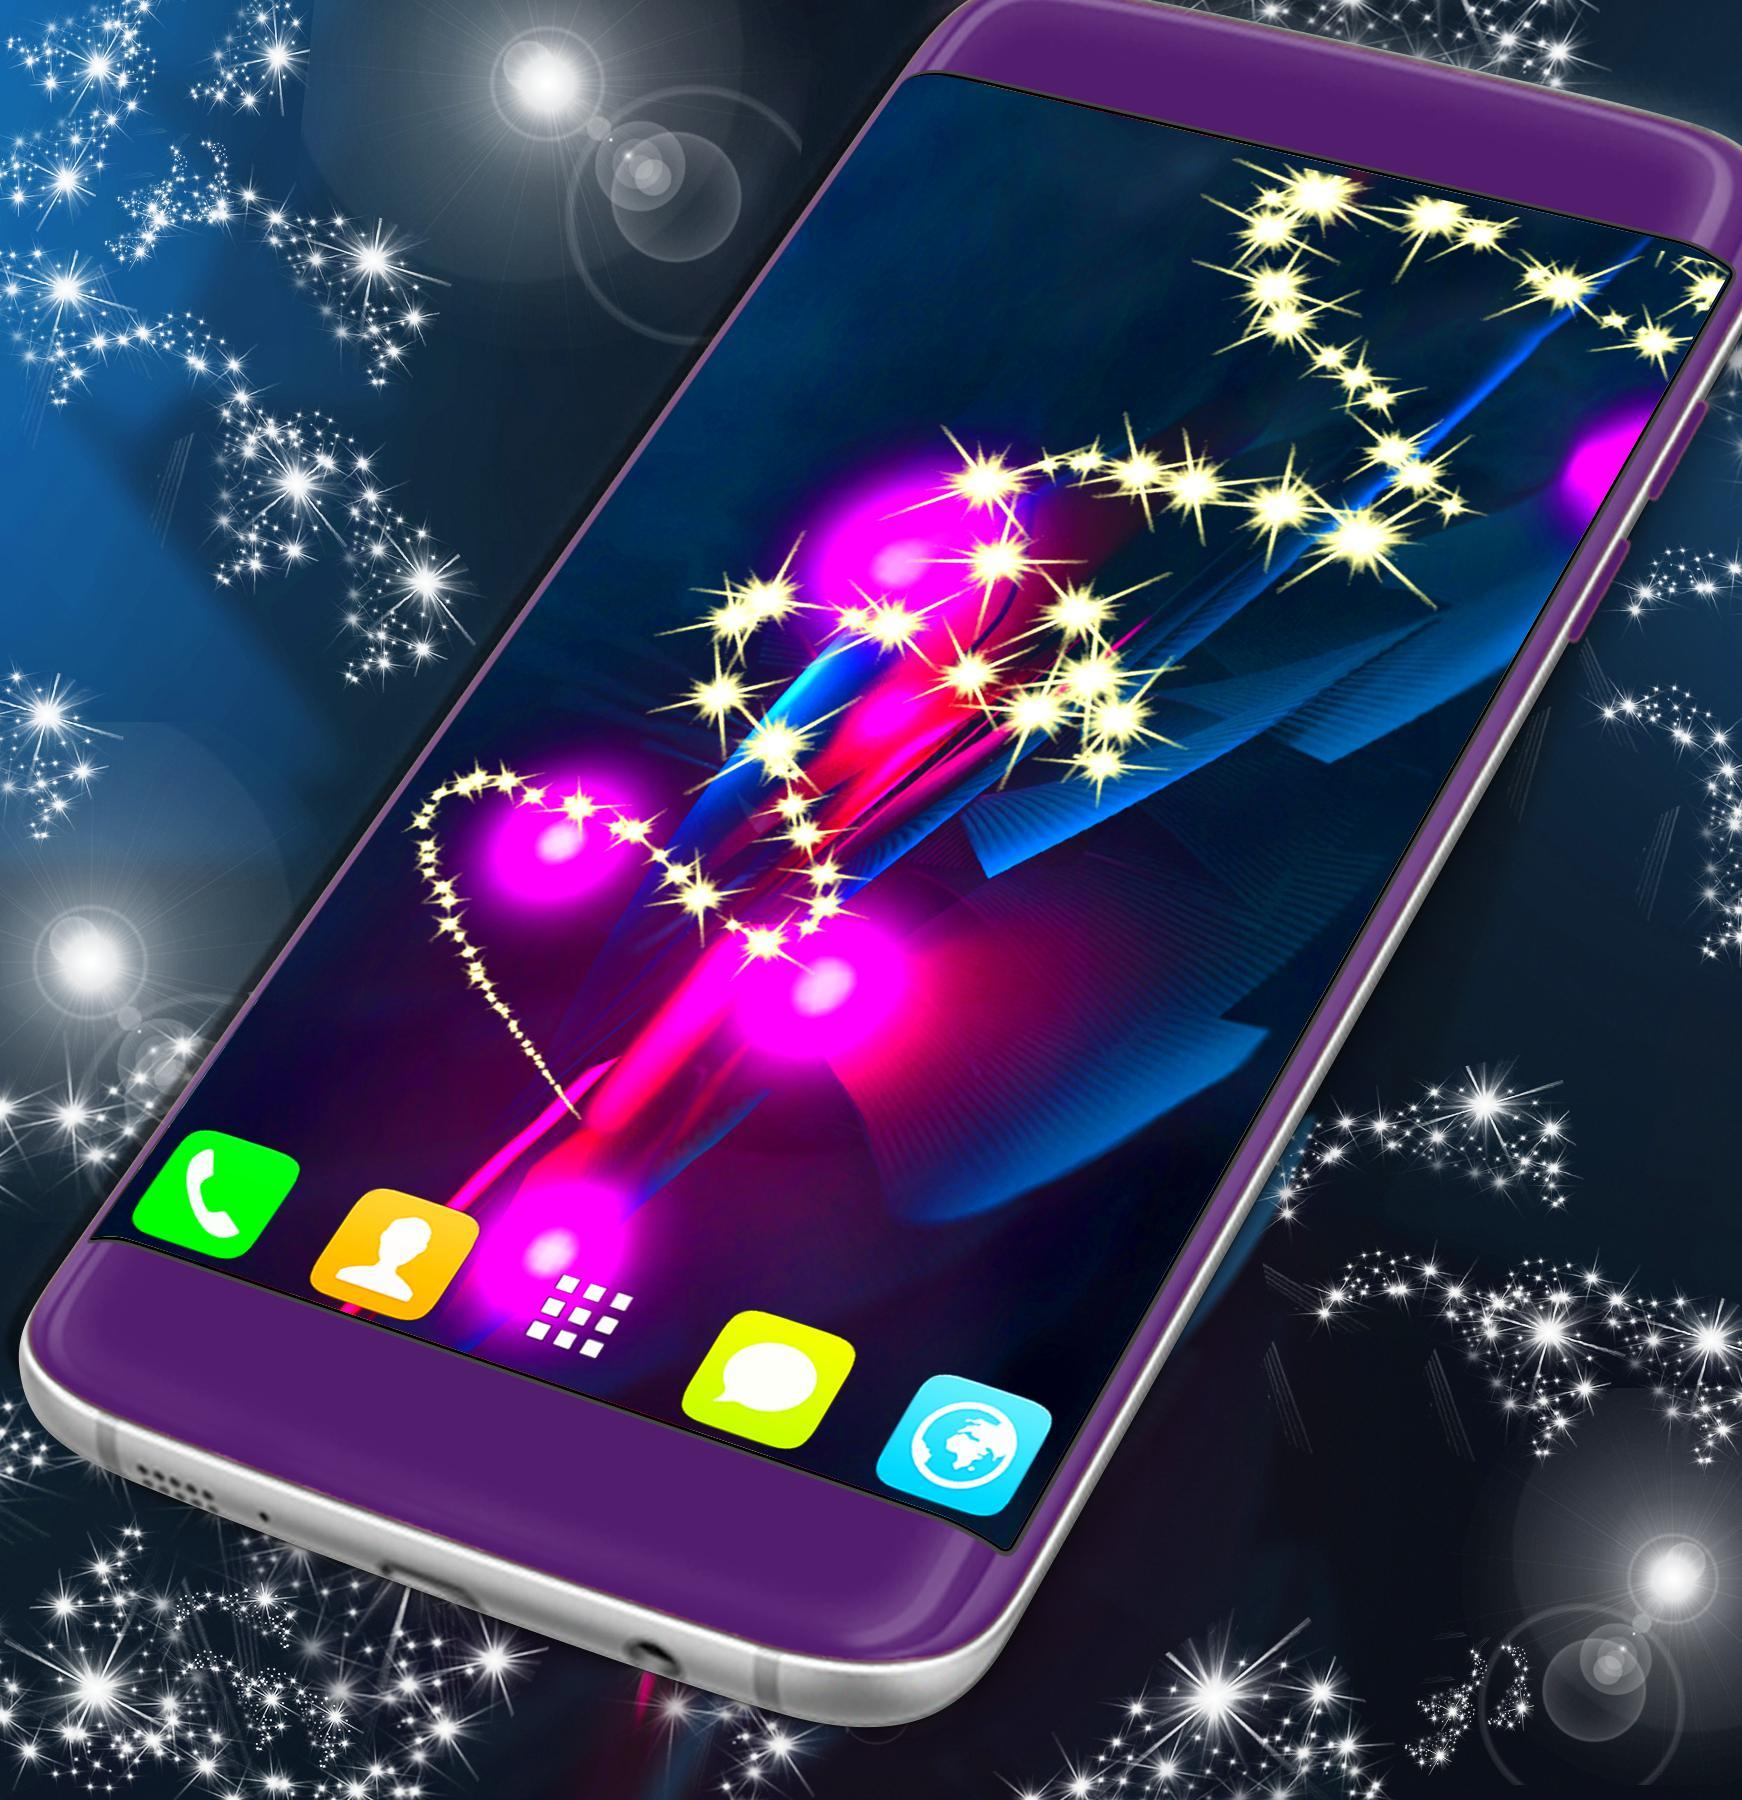 Live 3d Wallpaper For Samsung Galaxy S6 Edge For Android